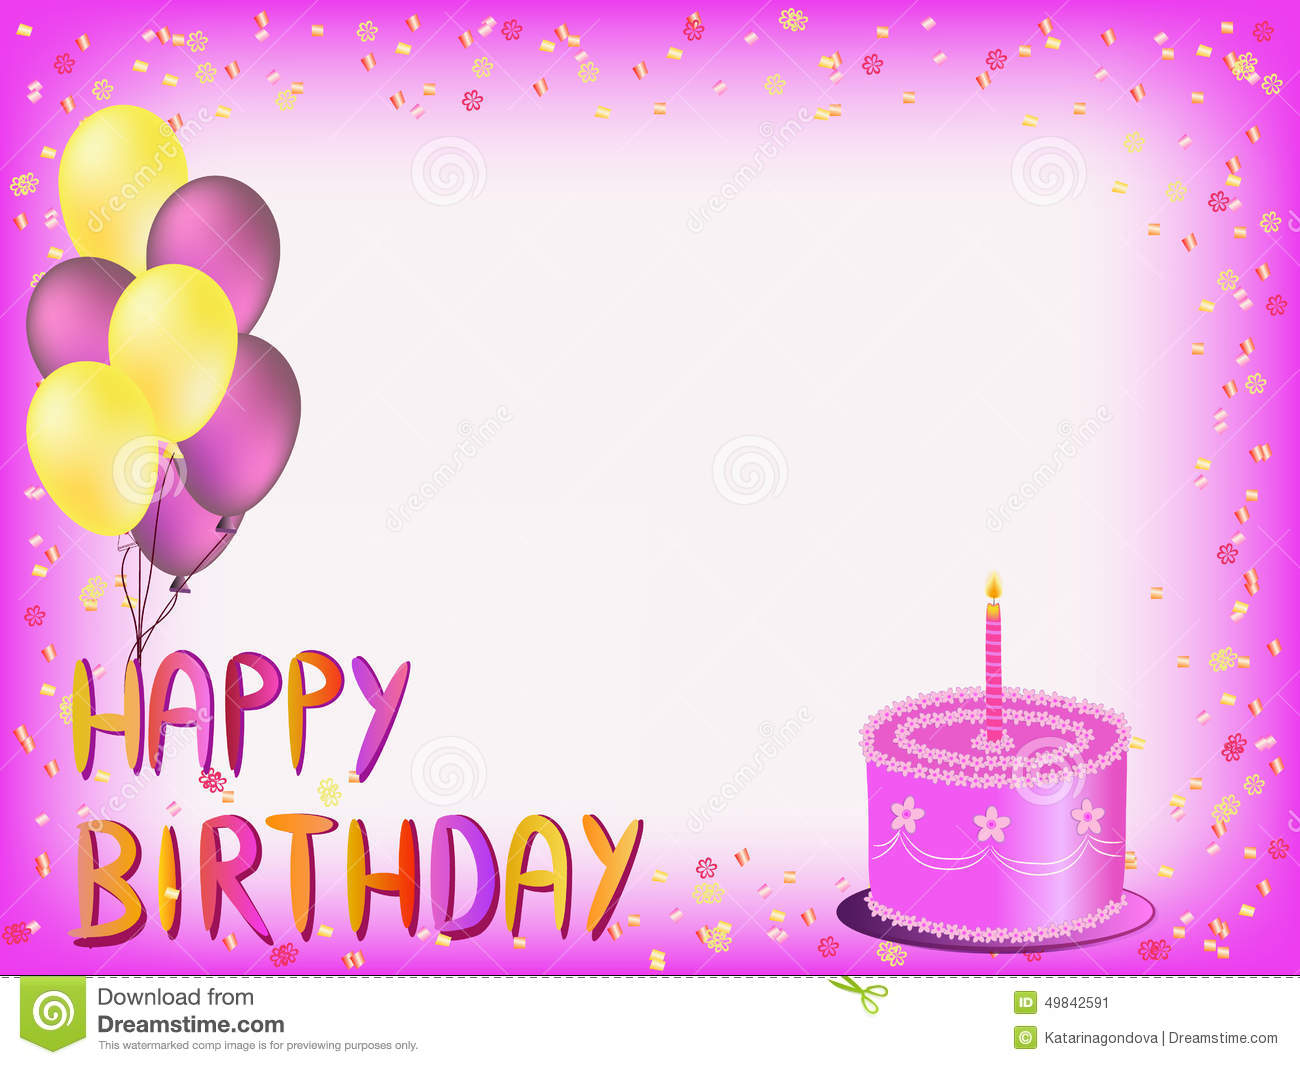 birthday greeting e cards ; happy-birthday-greeting-card-colorful-words-balloons-cake-illustration-49842591